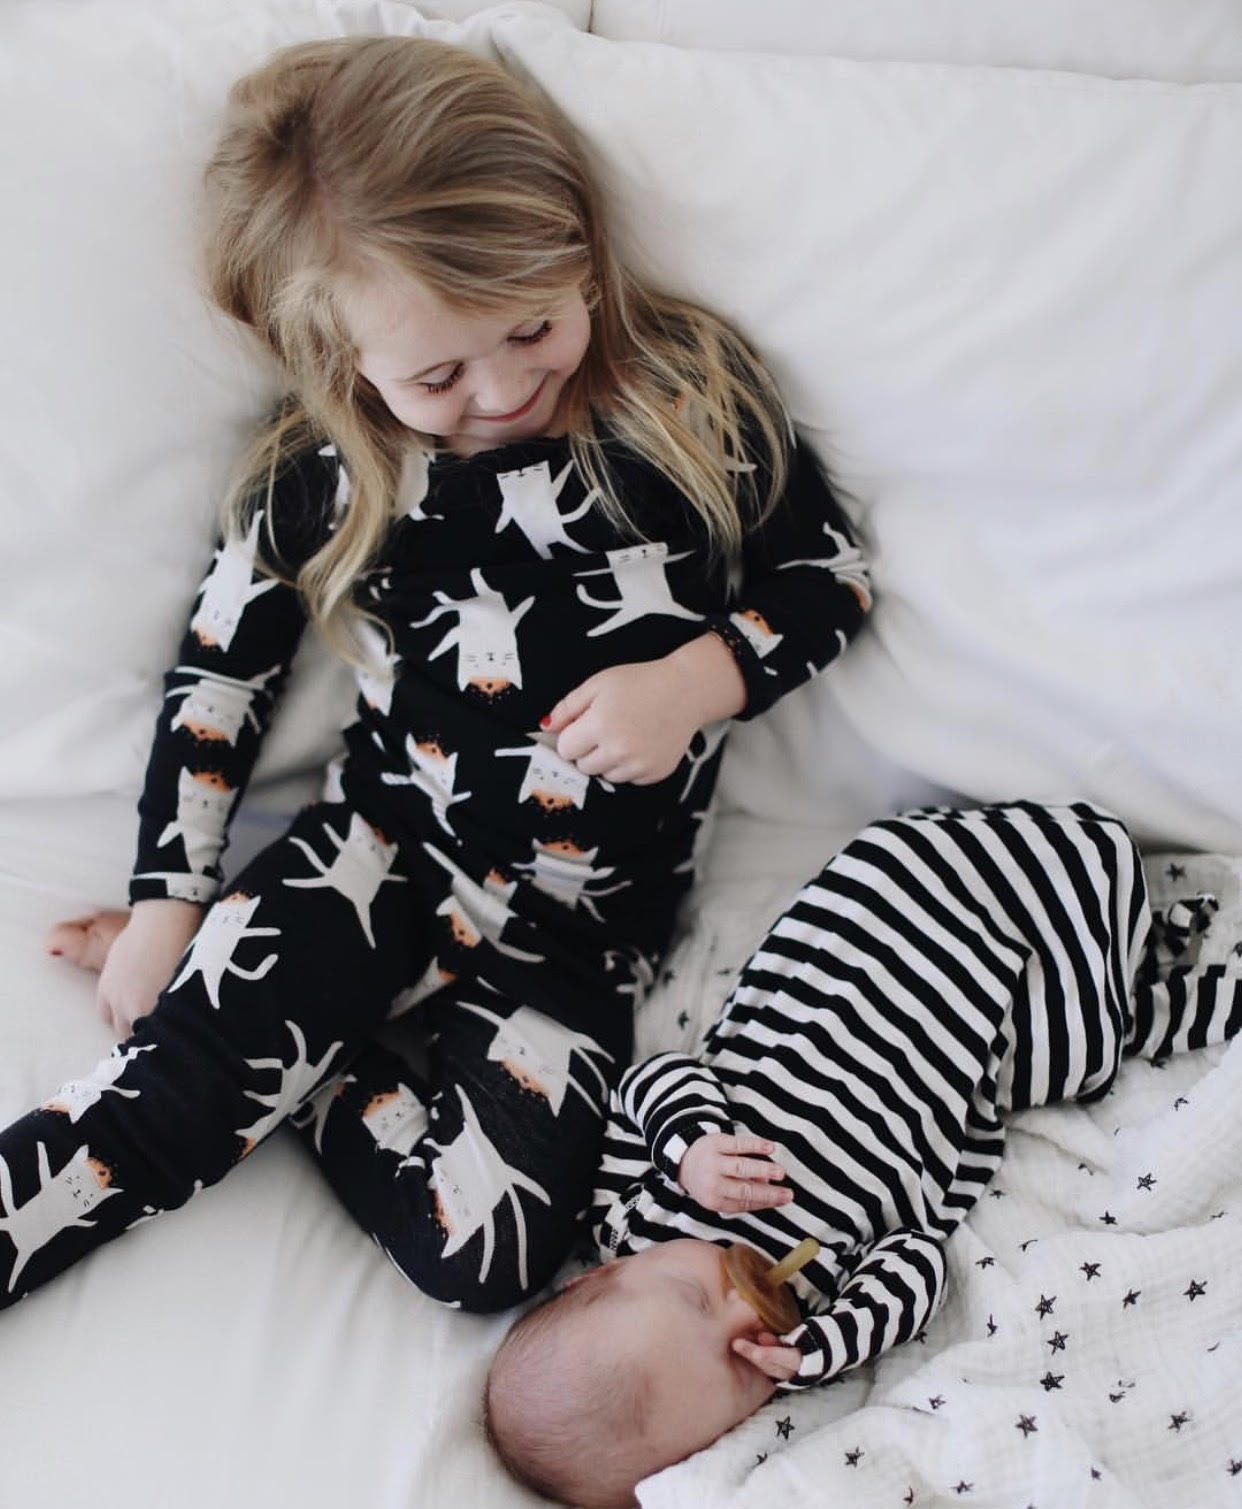 Sweetest Halloween jammies cuddles  via Calli Fox